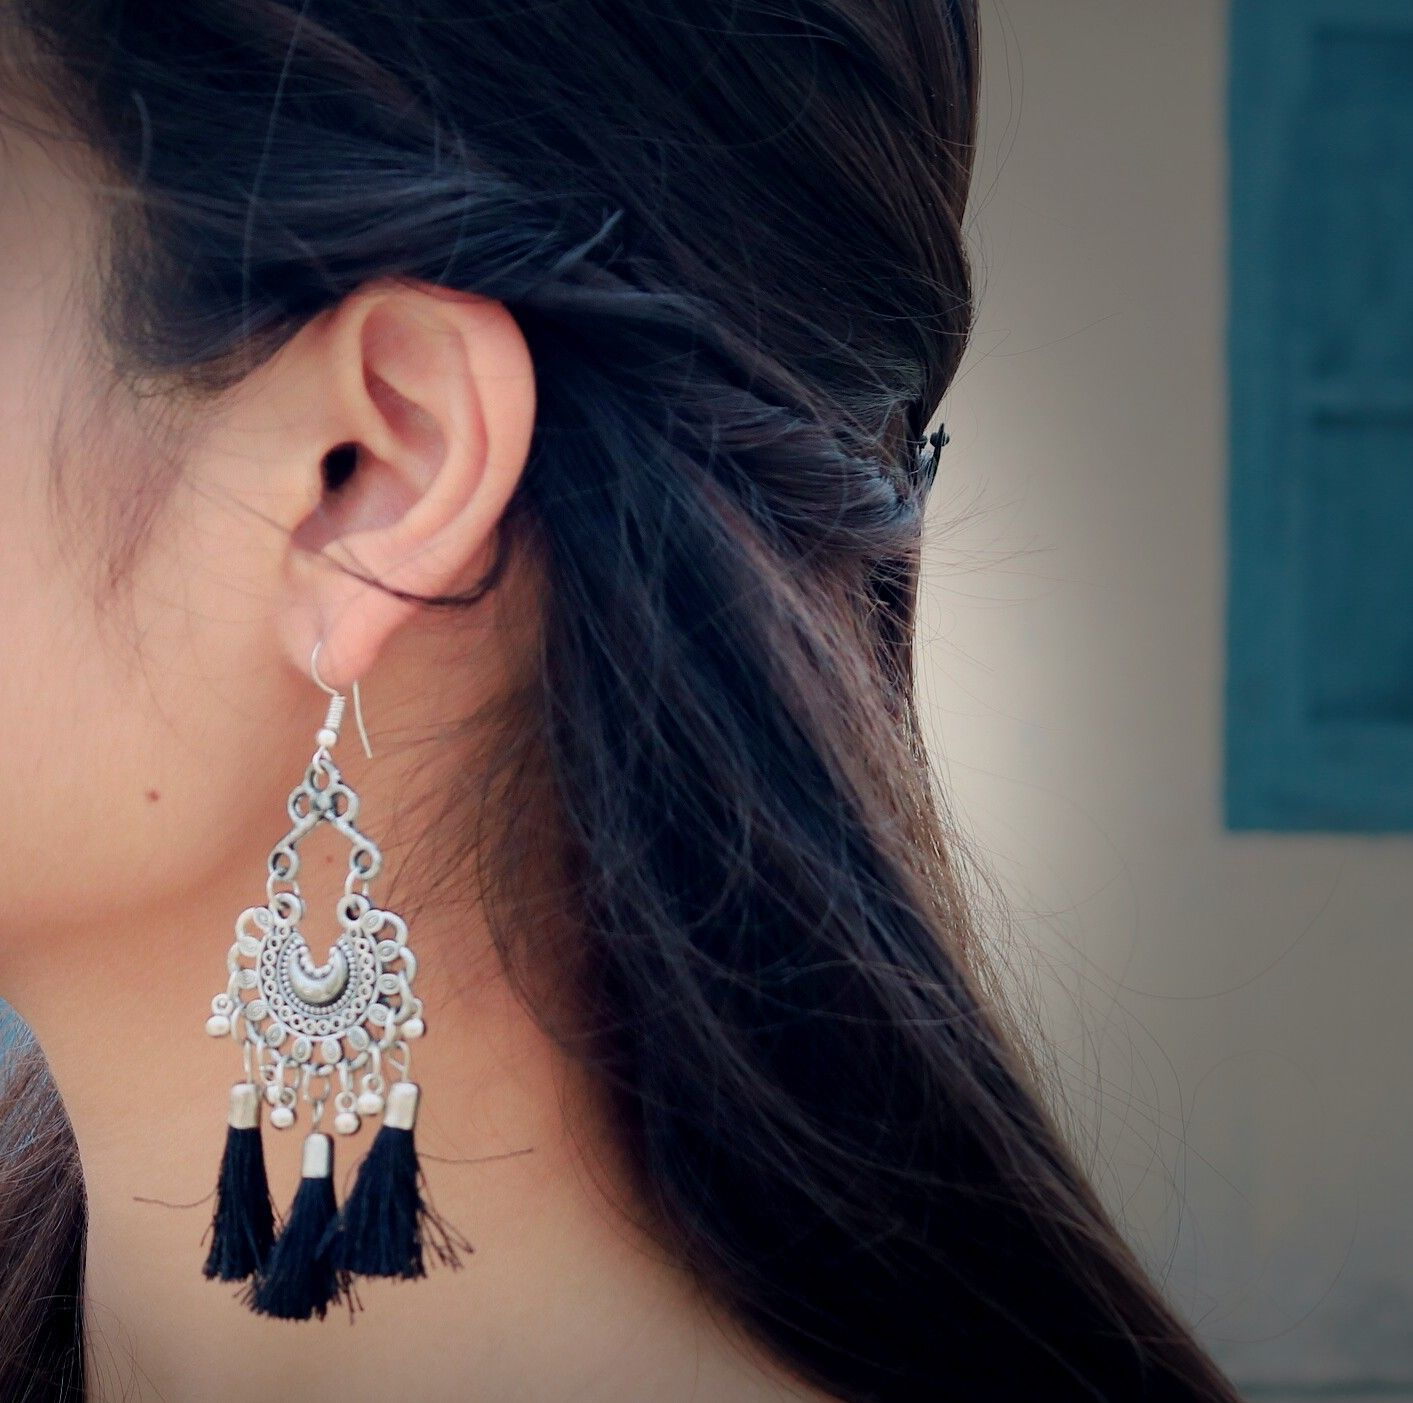 Tassel Designed Black Silver Earring Mychoice Fancy Jewellery Cute Jewelry Silver Jewelry Fashion Today i share with you the best whatsapp/facebook dpz idea with earrings /best hidden face poses/photoshoot/photography idea for girls. cute jewelry silver jewelry fashion